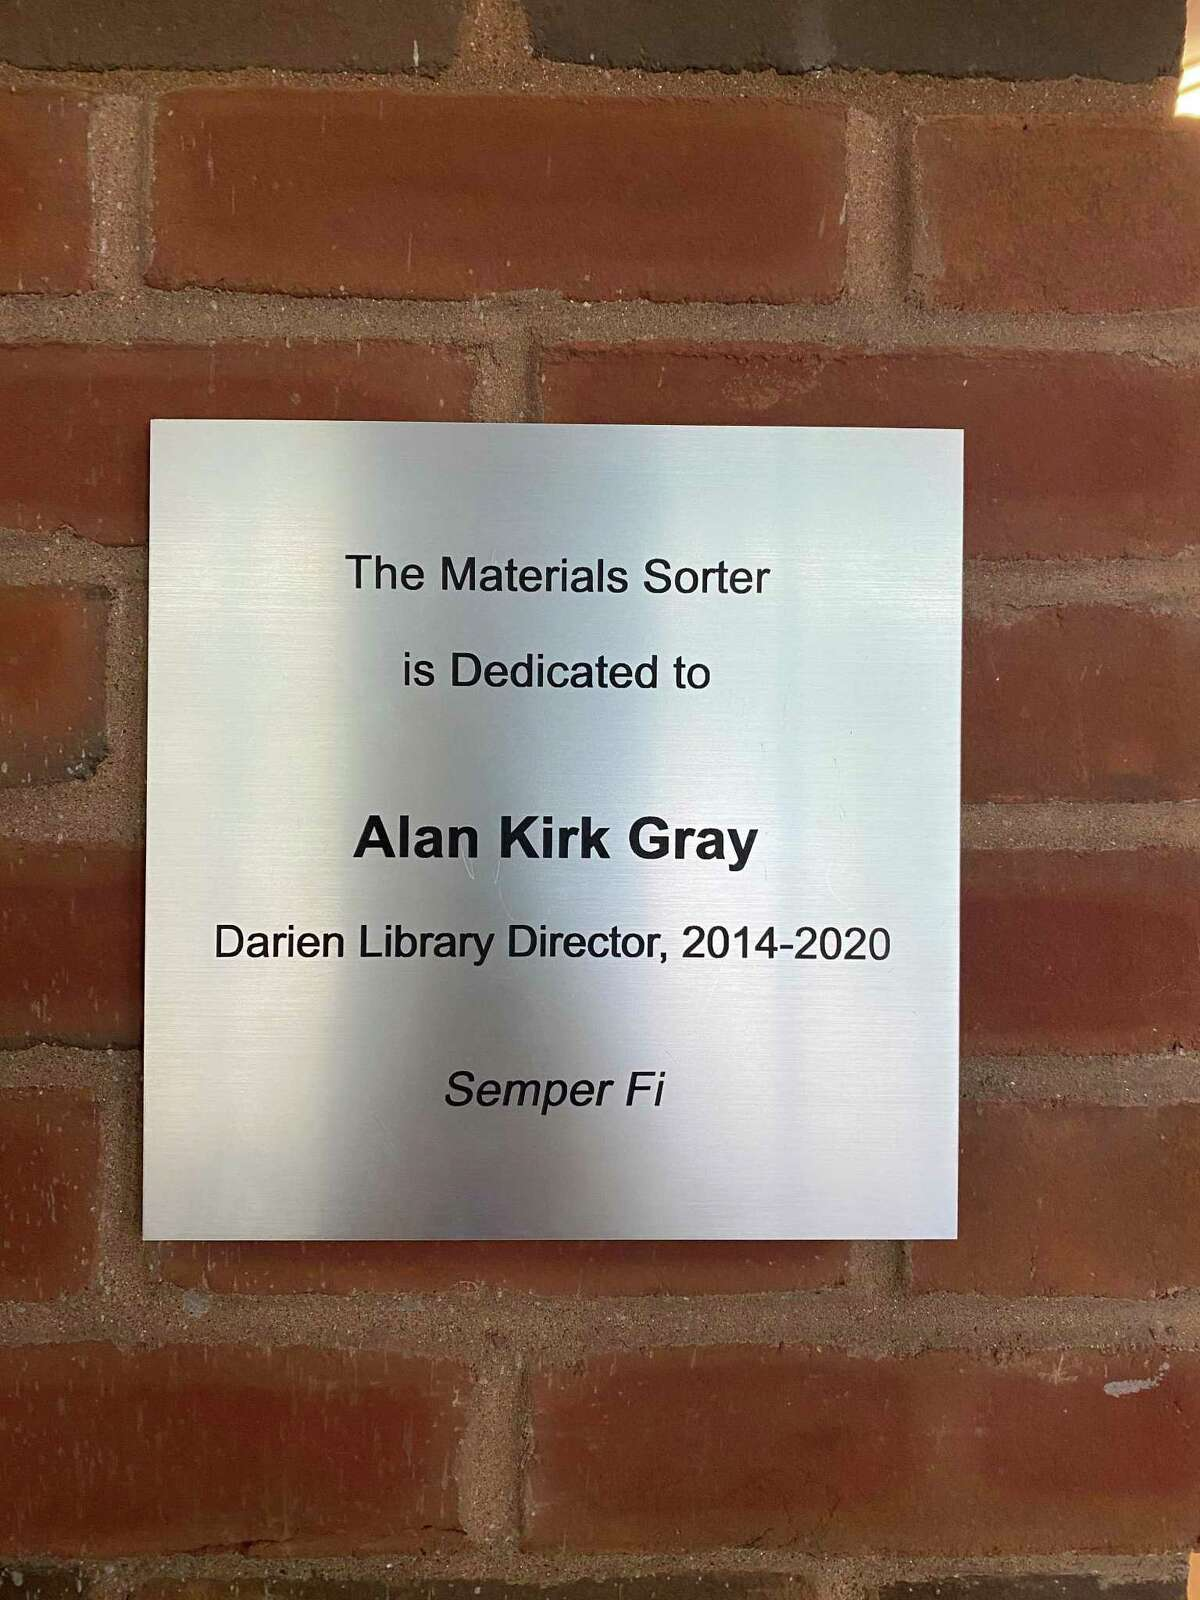 The library's new indoor automatic book returns machine is dedicated to Alan Kirk Gray.